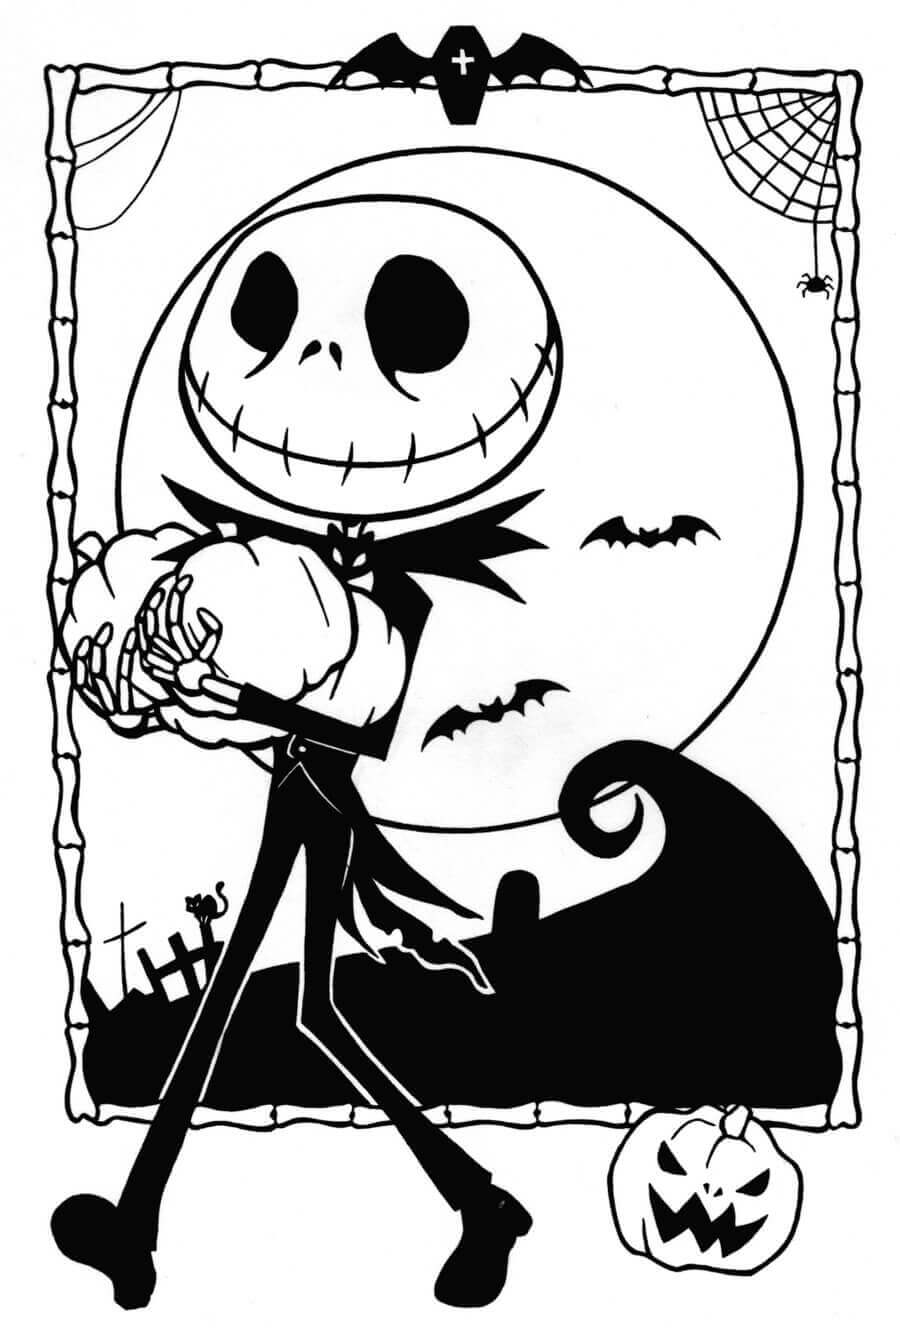 Jack Skellington From Nightmare Before Christmas Coloring Pages